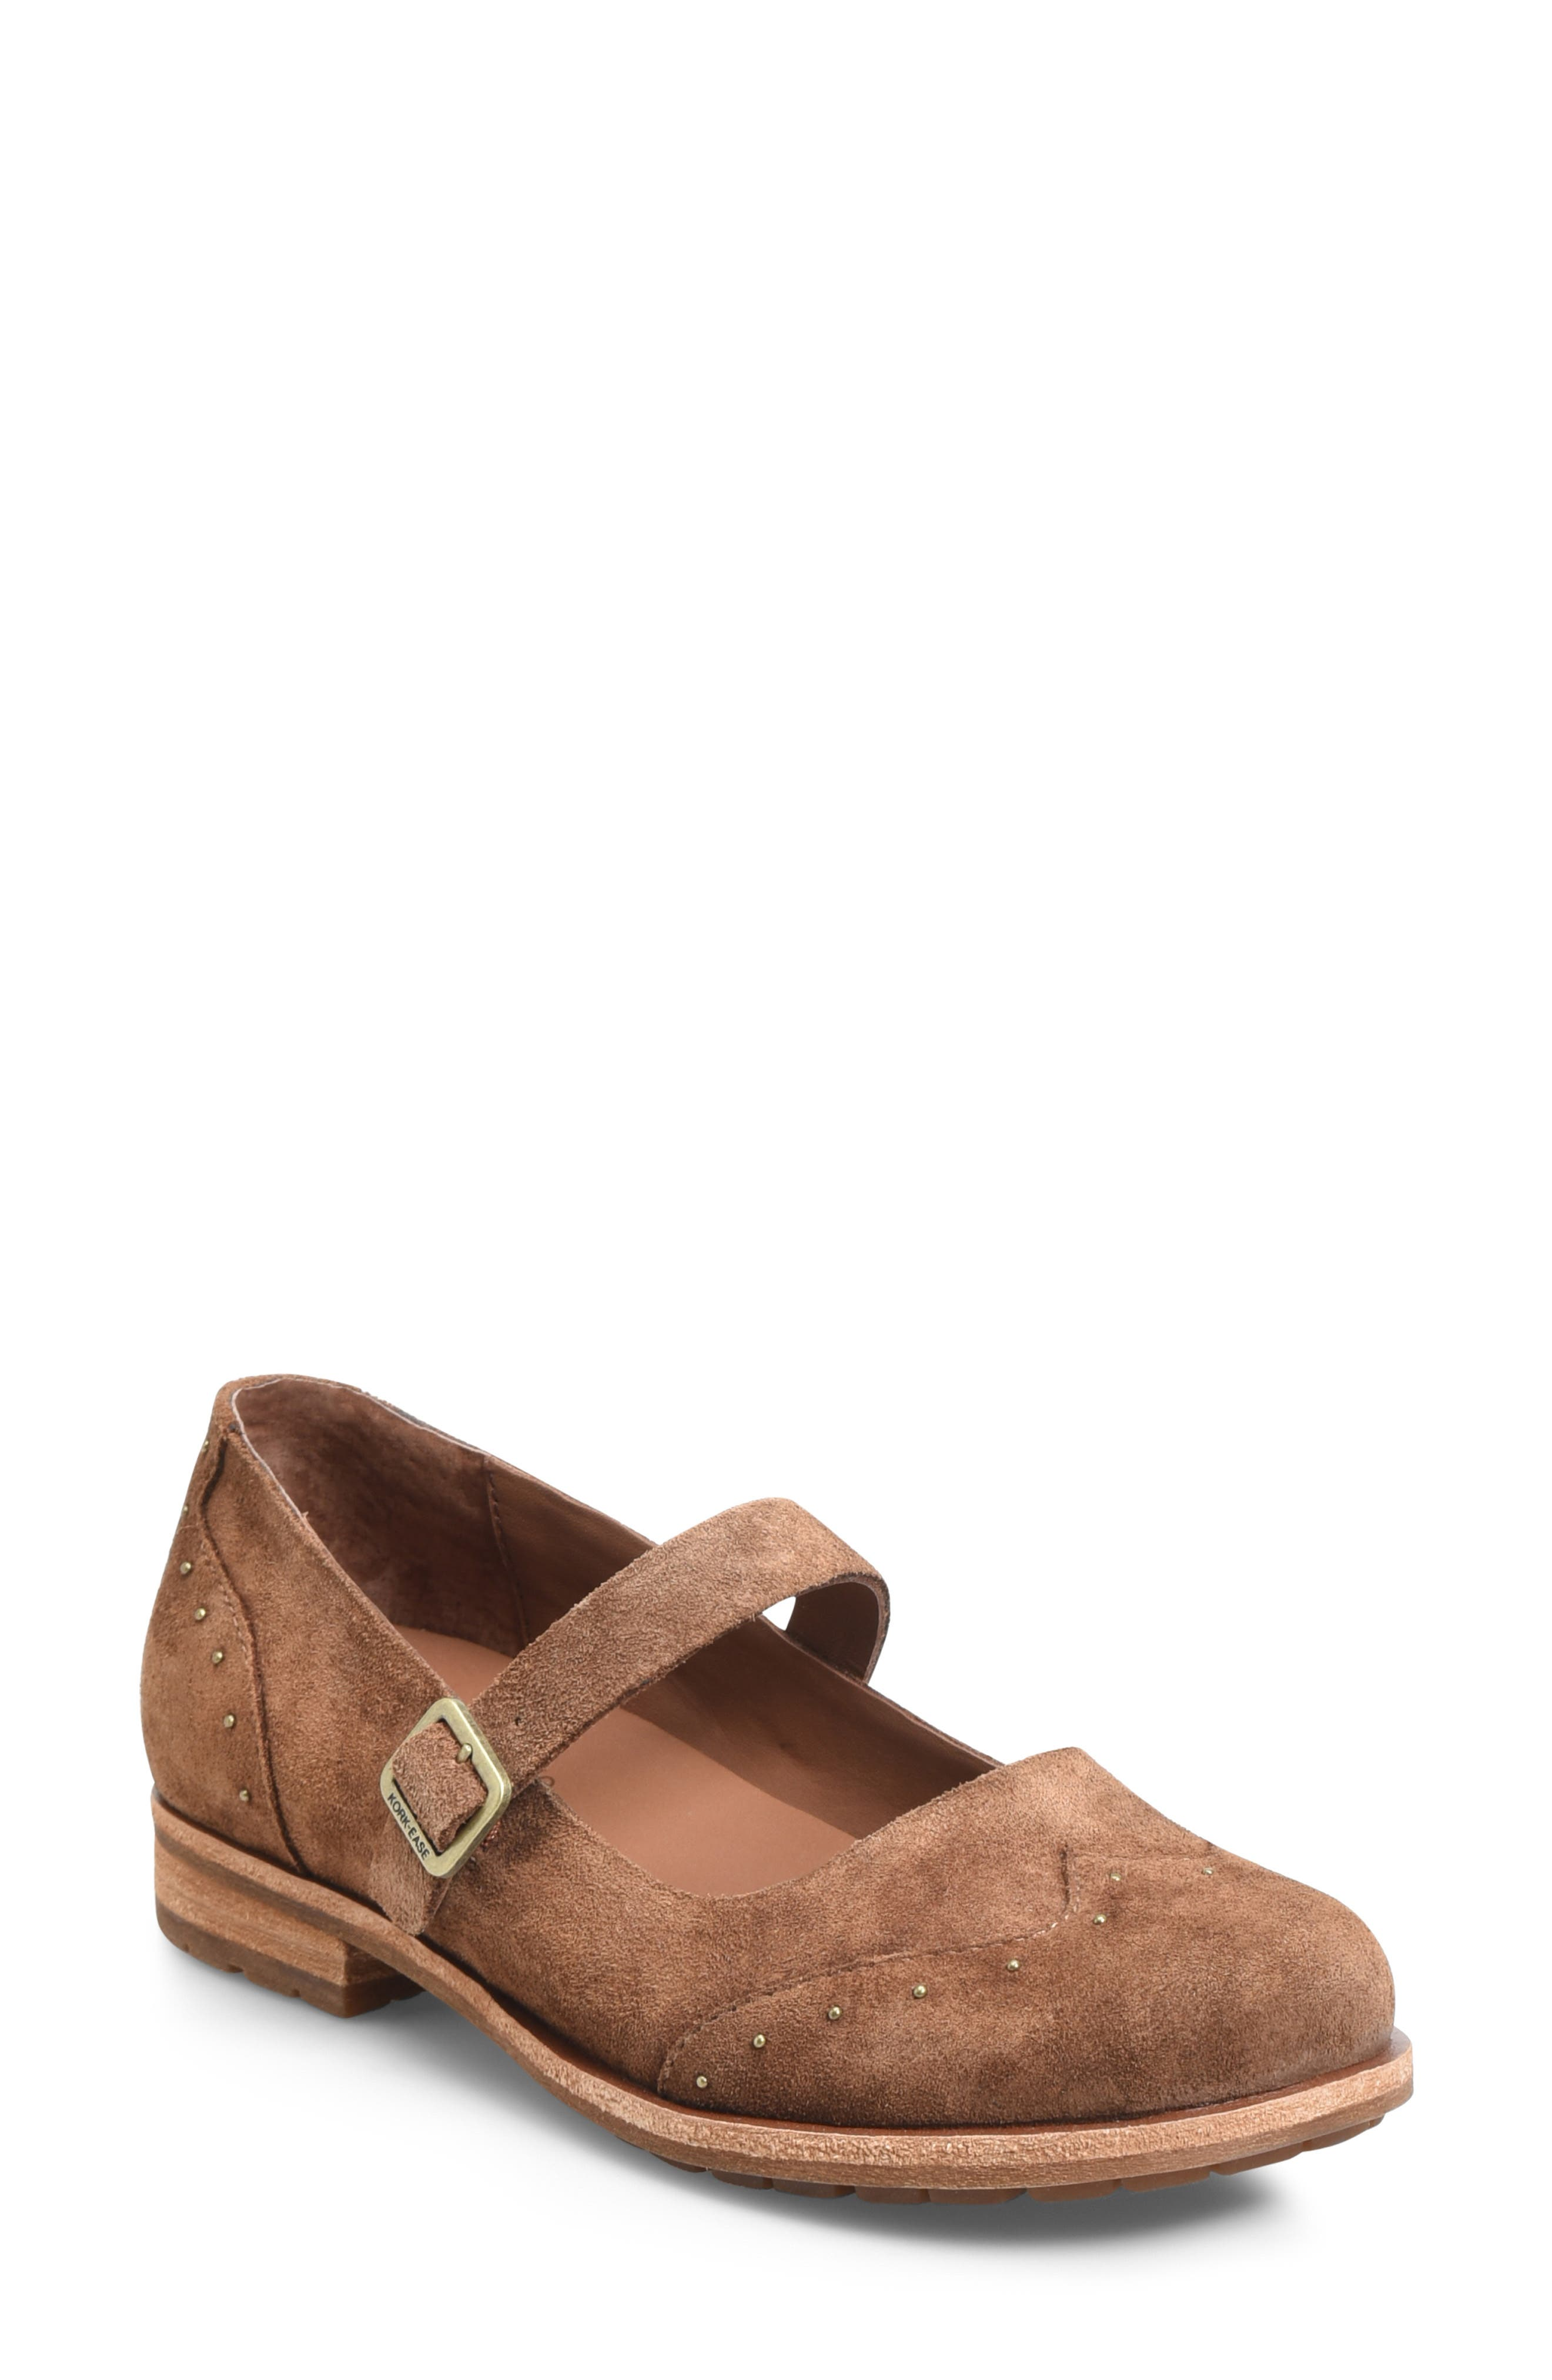 Kork-Ease Brystal Mary Jane Flat- Brown